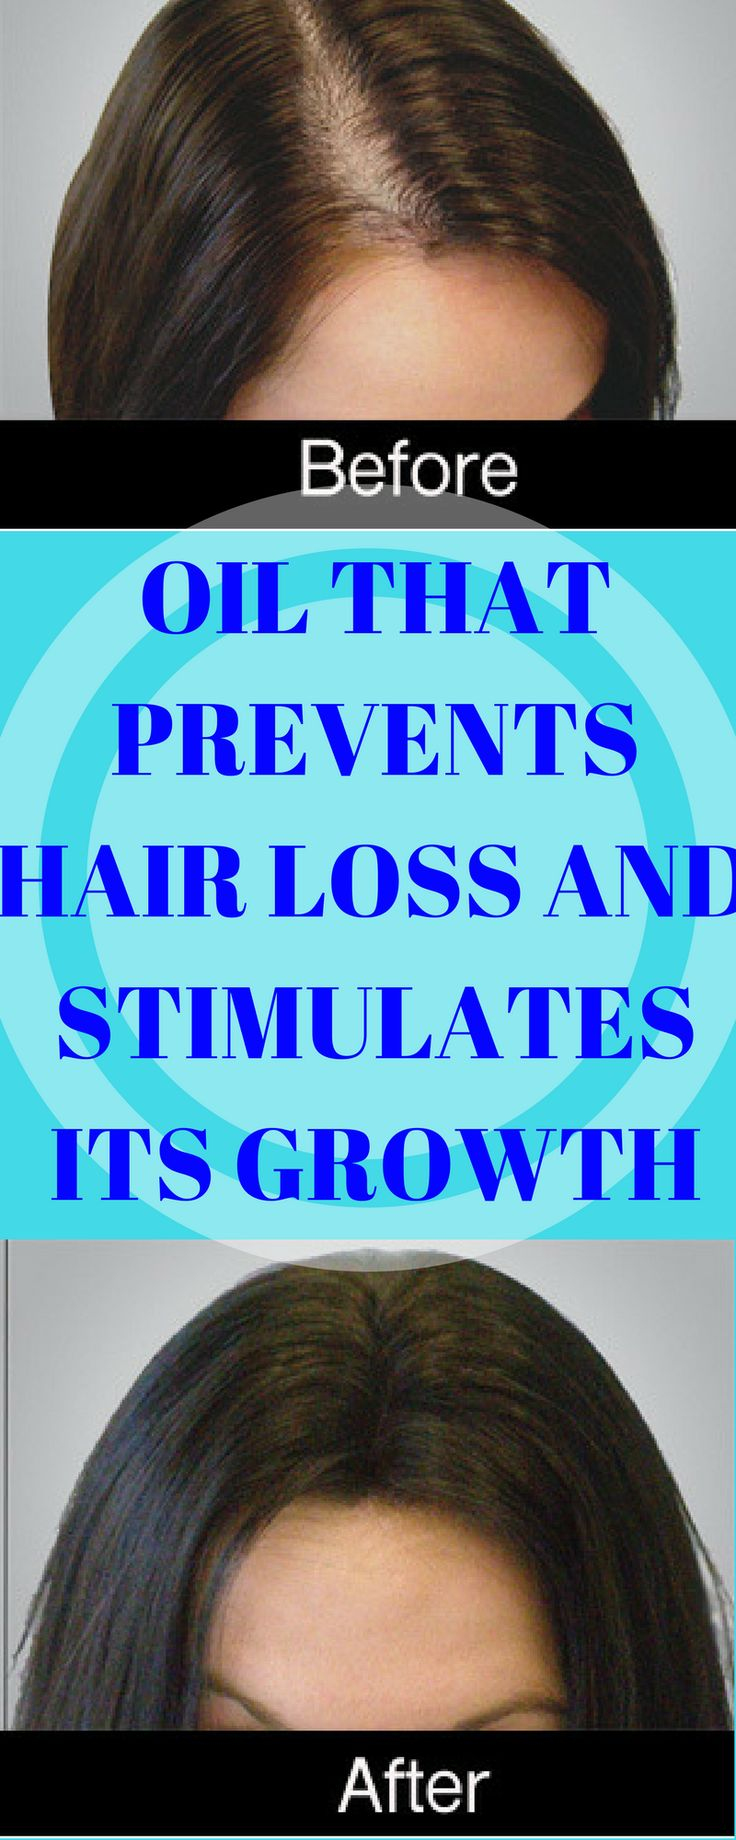 Oil That Prevents Hair Loss and Stimulates Its Growth